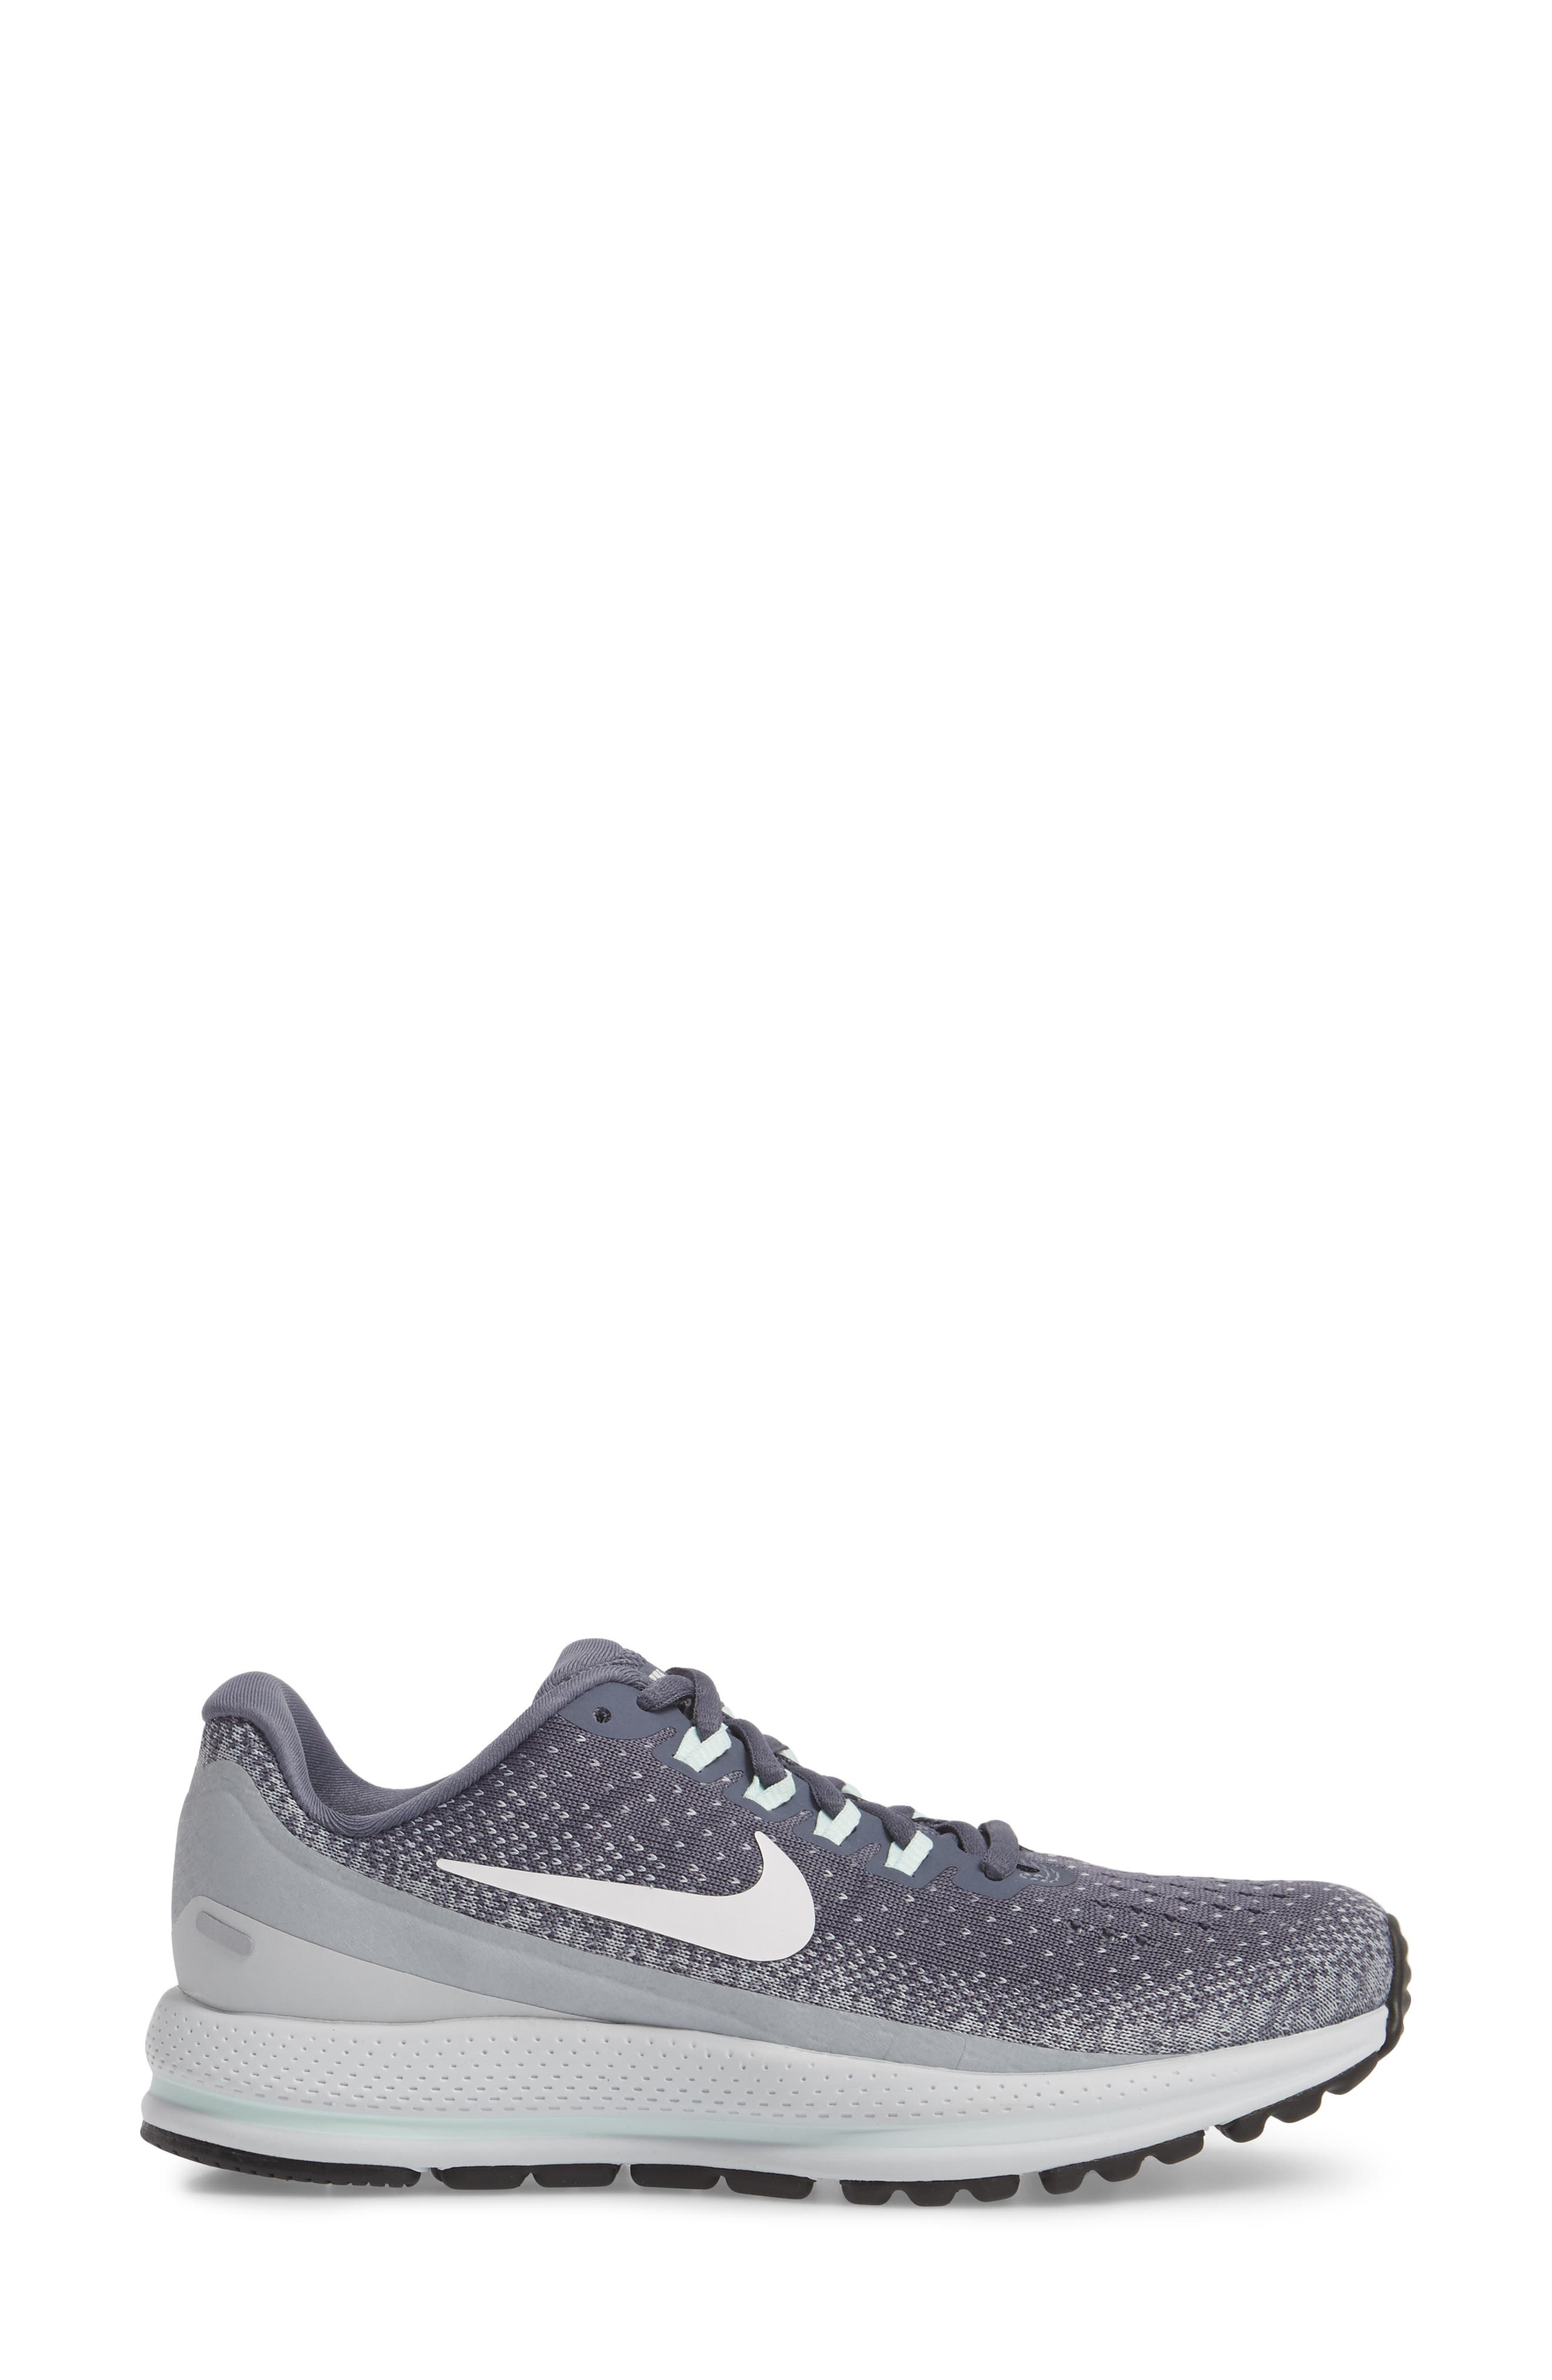 Air Zoom Vomero 13 Running Shoe,                             Alternate thumbnail 22, color,